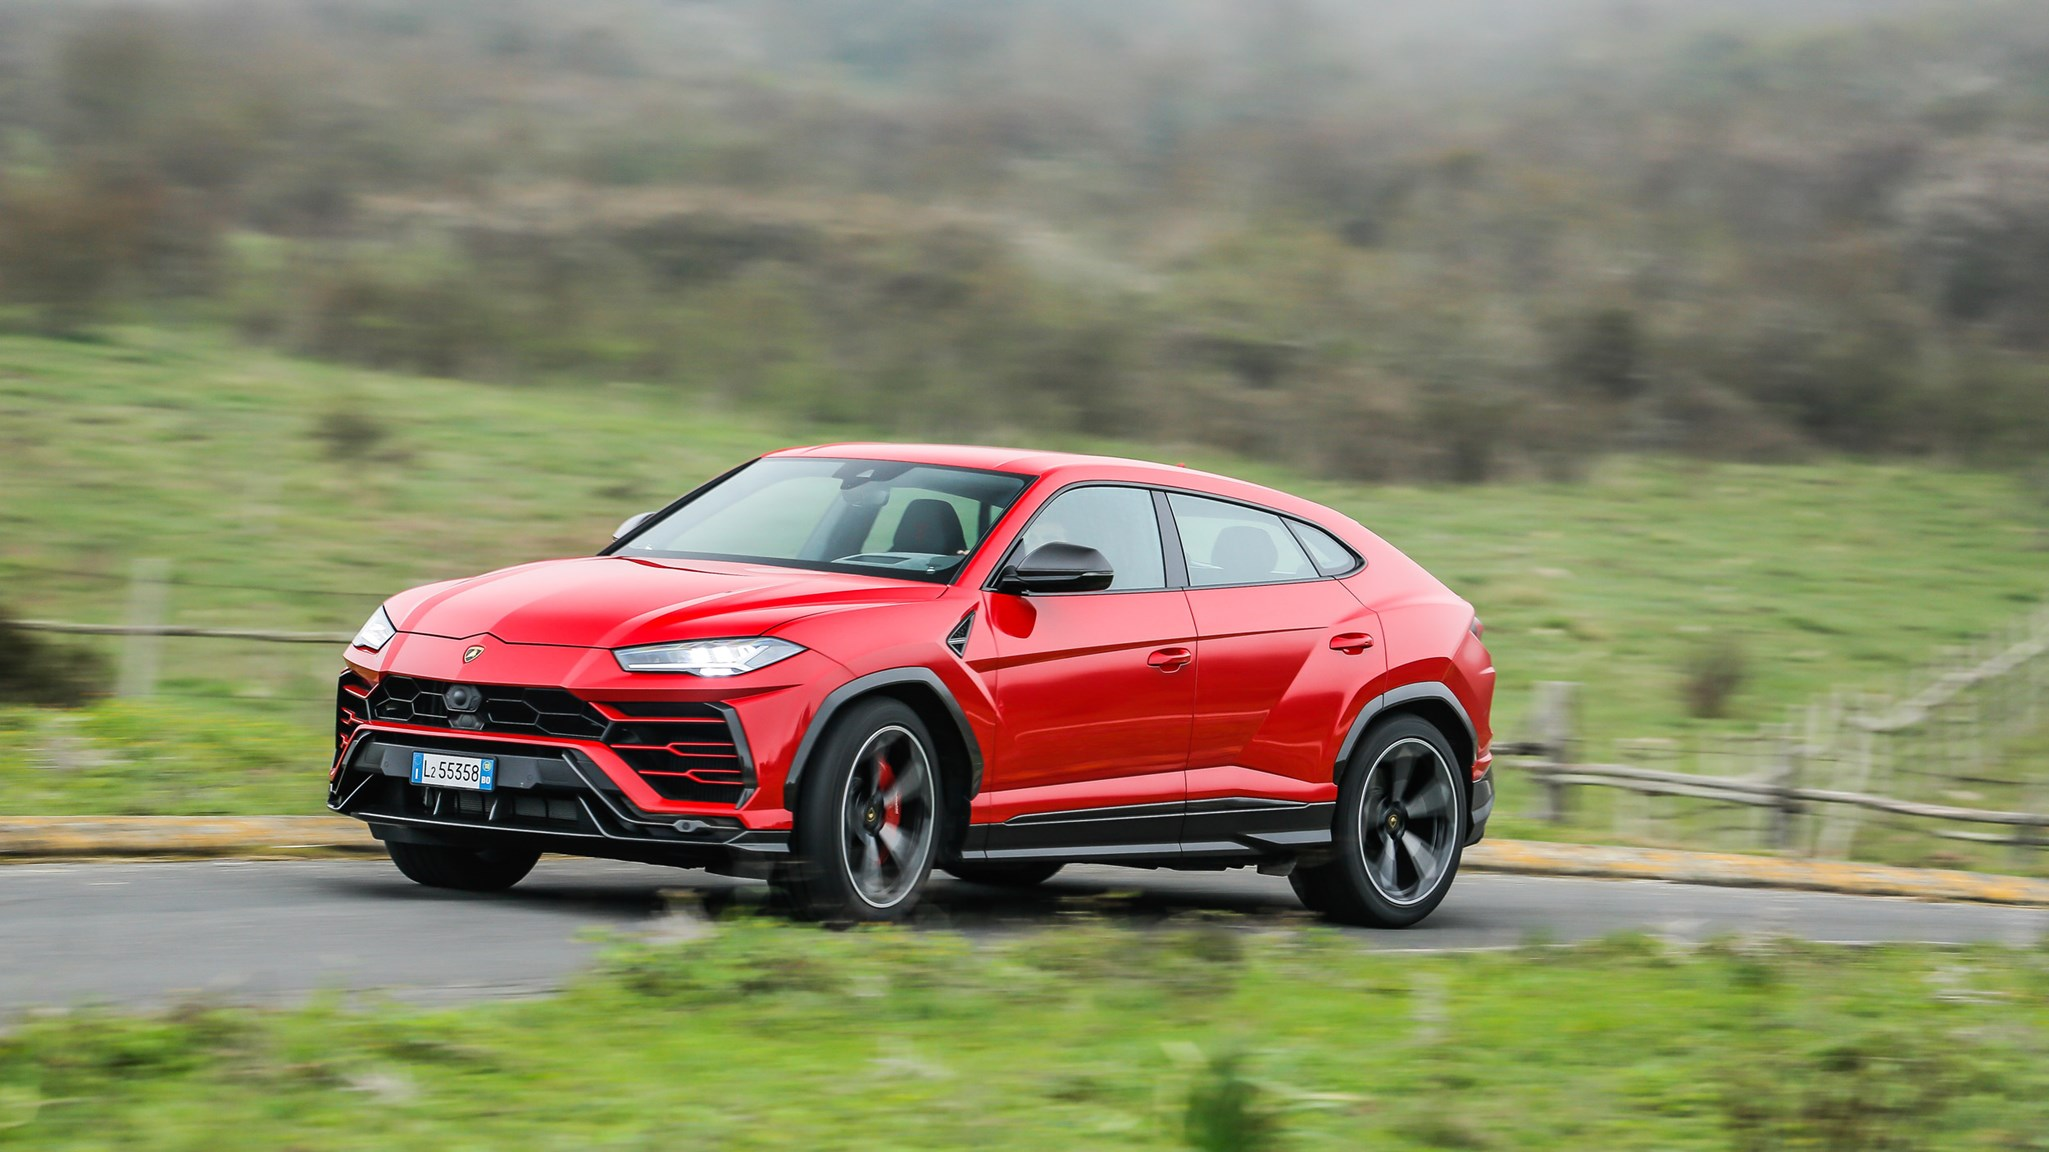 Lamborghini Urus 2018 review: one of a kind  CAR Magazine